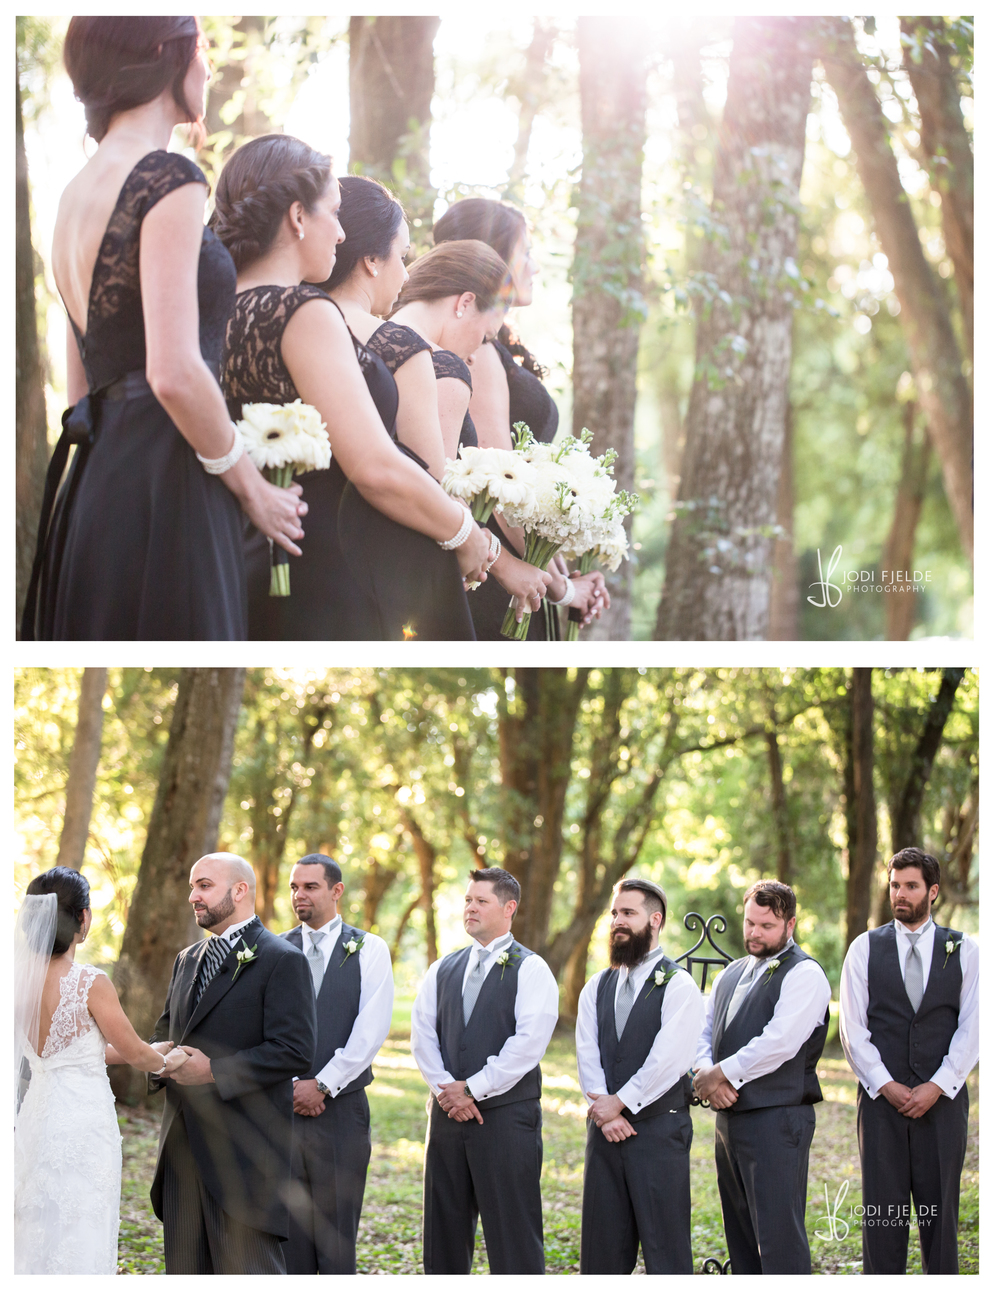 Highland_Manor_Apopka_Florida_wedding_Jackie_&_Tim_photography_jodi_Fjelde_photography-15.jpg